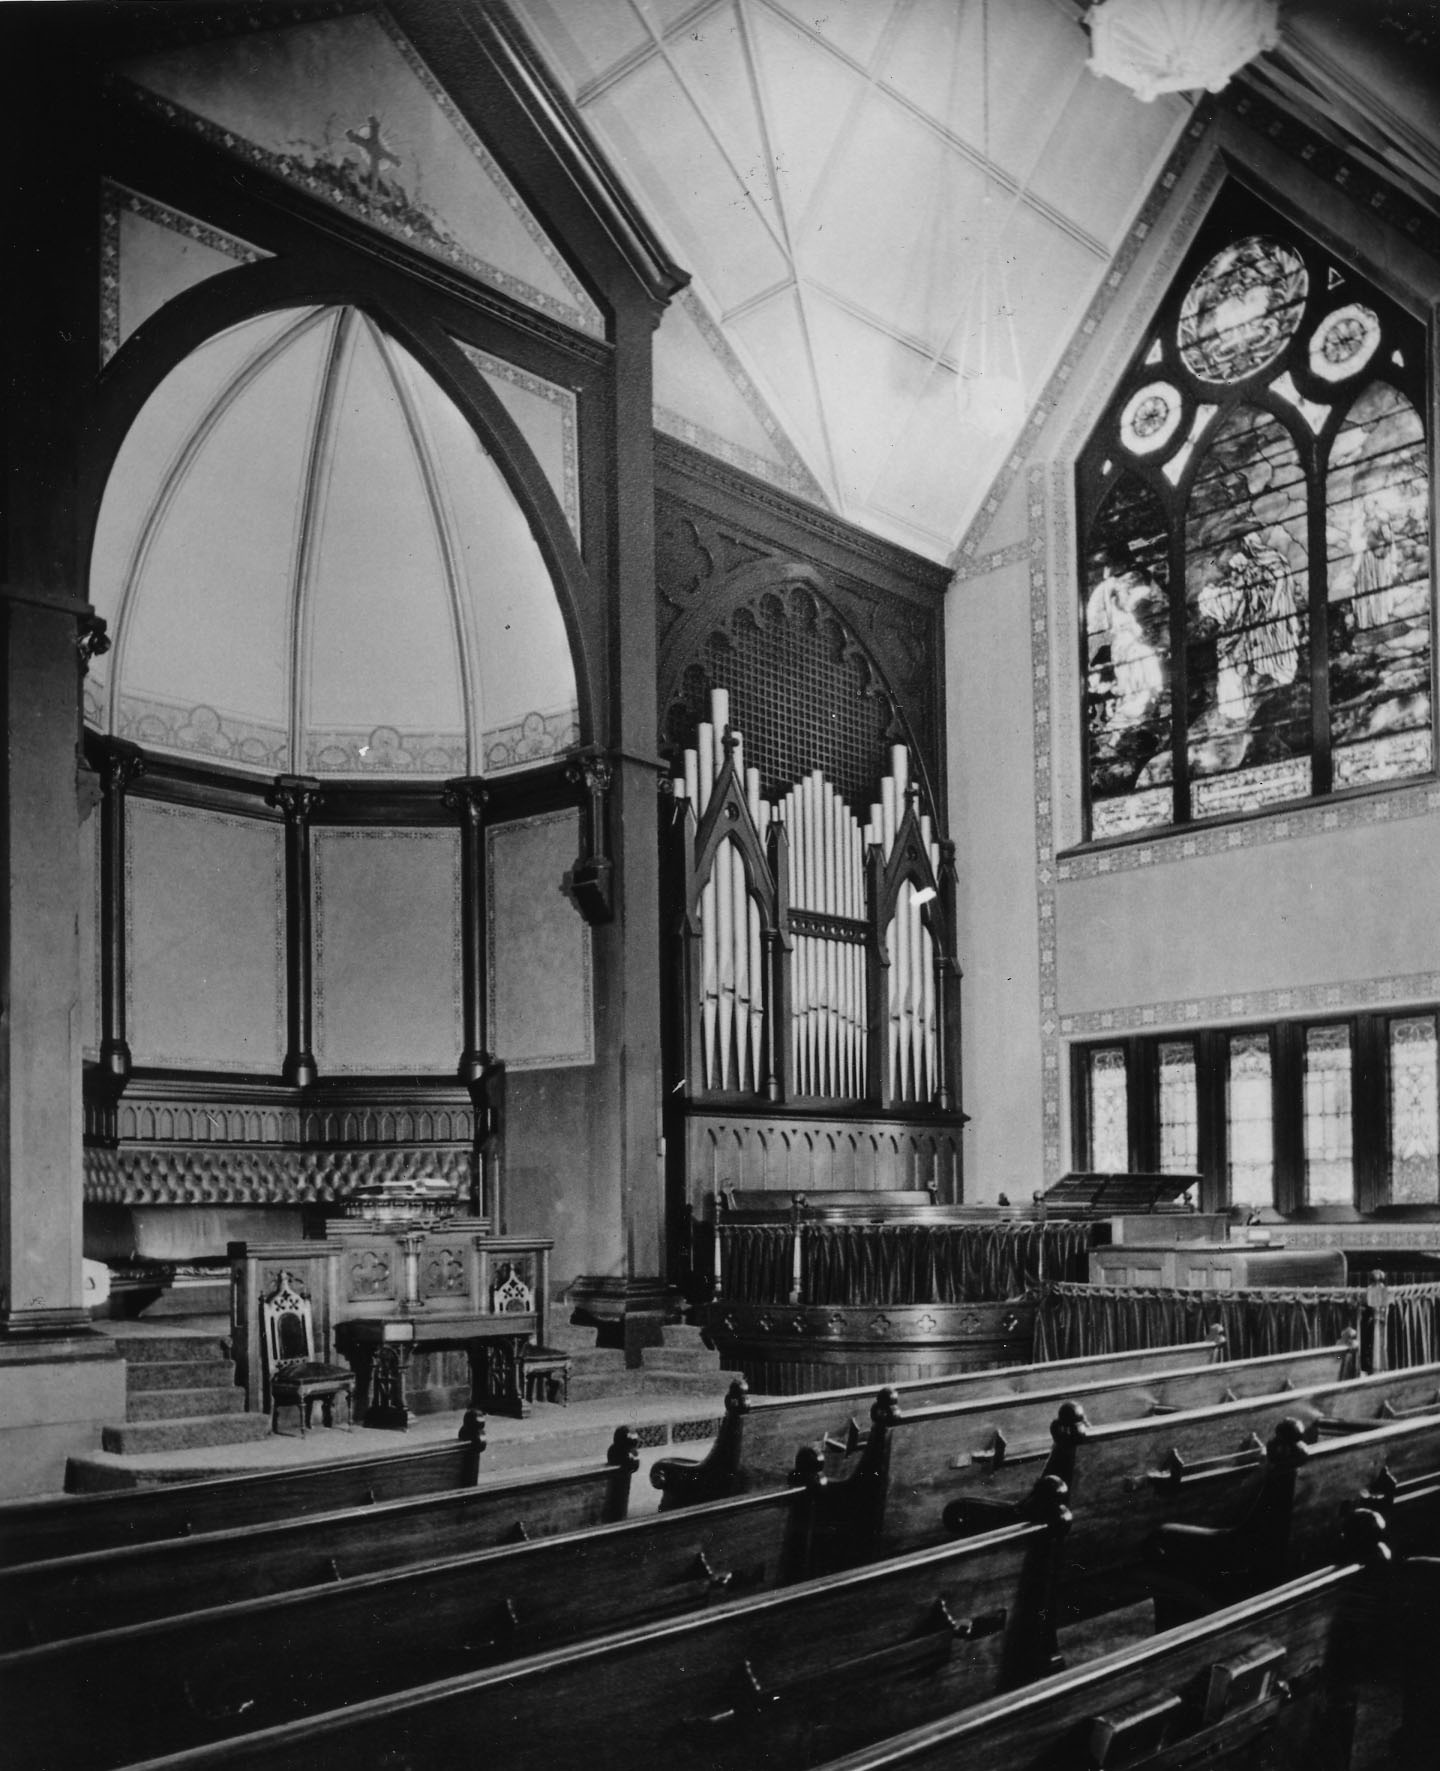 image of sanctuary in 1930